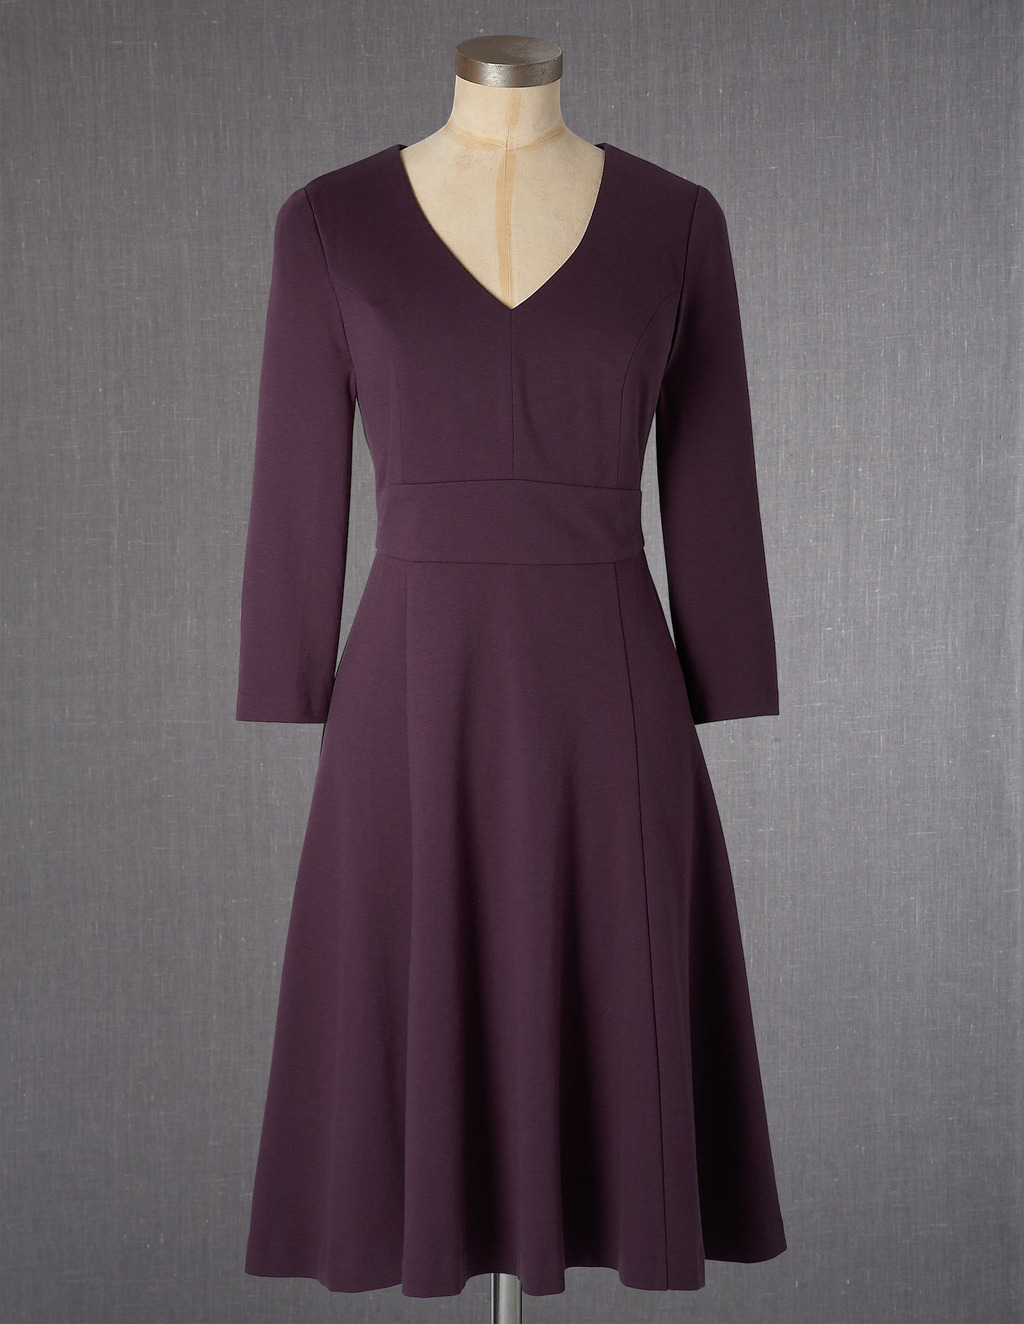 Clerkenwell Dress - neckline: v-neck; pattern: plain; predominant colour: burgundy; occasions: work, occasion; length: on the knee; fit: fitted at waist & bust; style: fit & flare; fibres: cotton - stretch; sleeve length: 3/4 length; sleeve style: standard; pattern type: fabric; texture group: other - light to midweight; season: a/w 2013